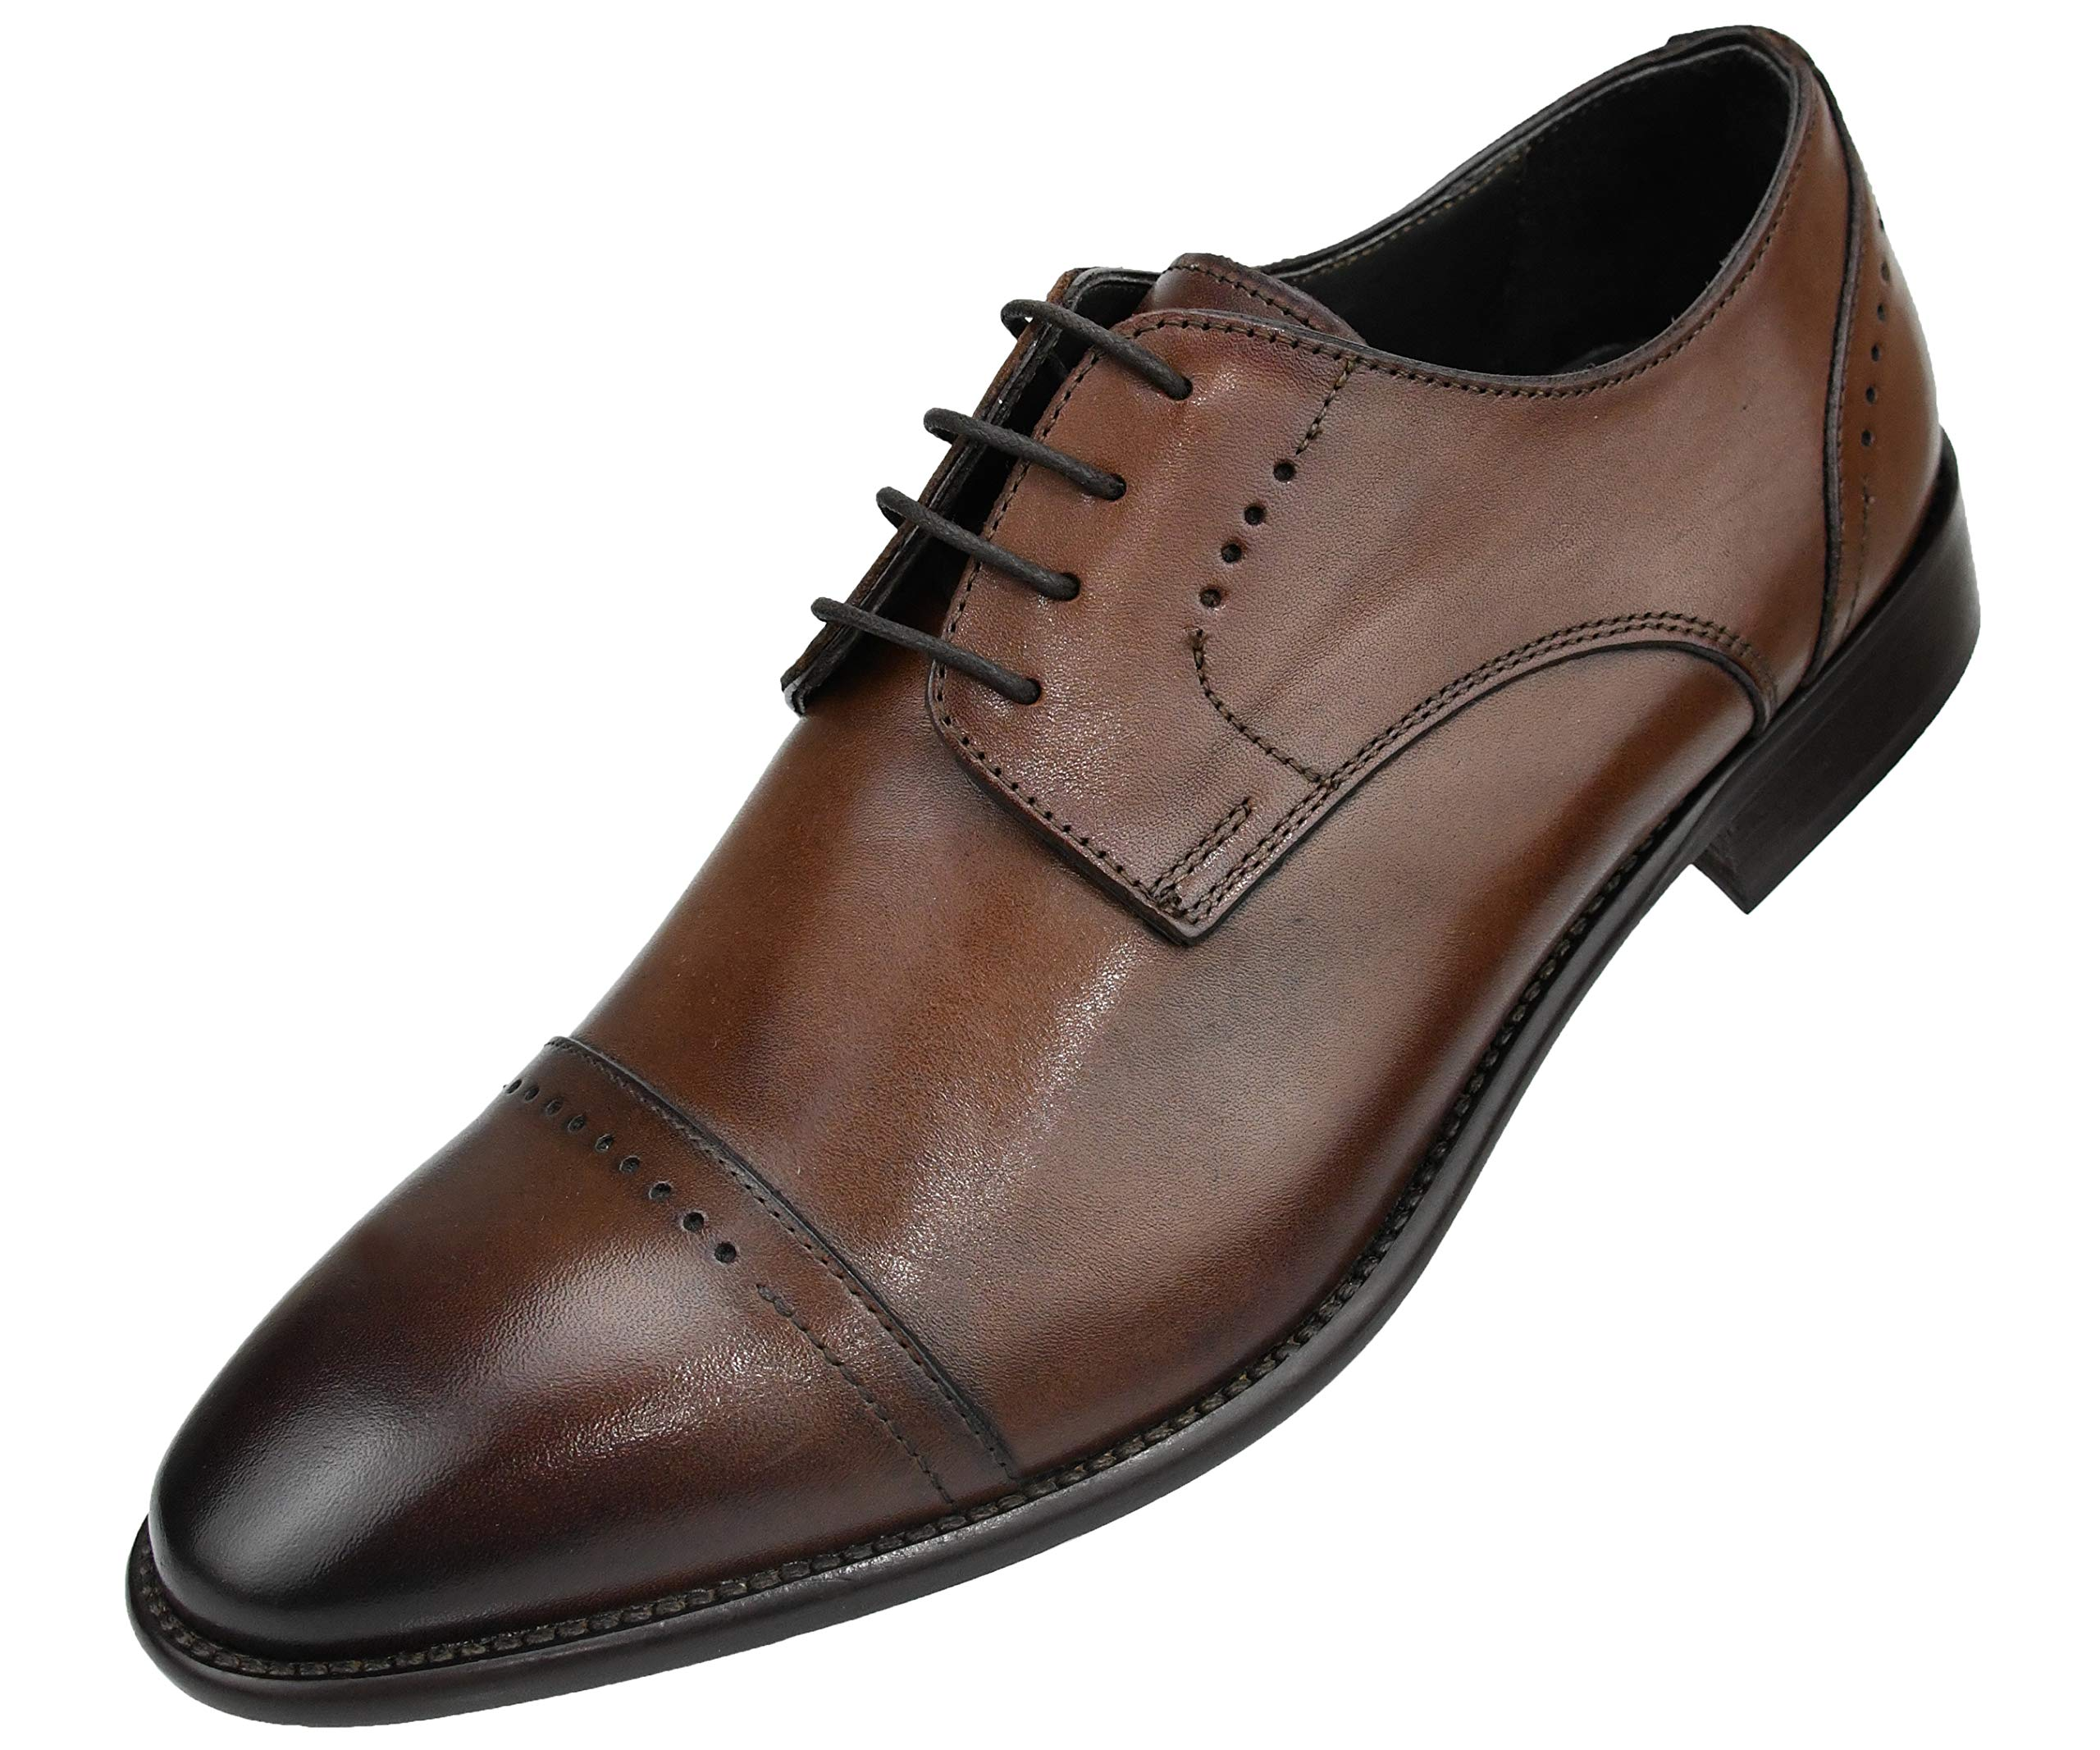 Anthony Veer Mens CALI Monk Strap Dress Shoe in Premium Italian Leather Goodyear Welted